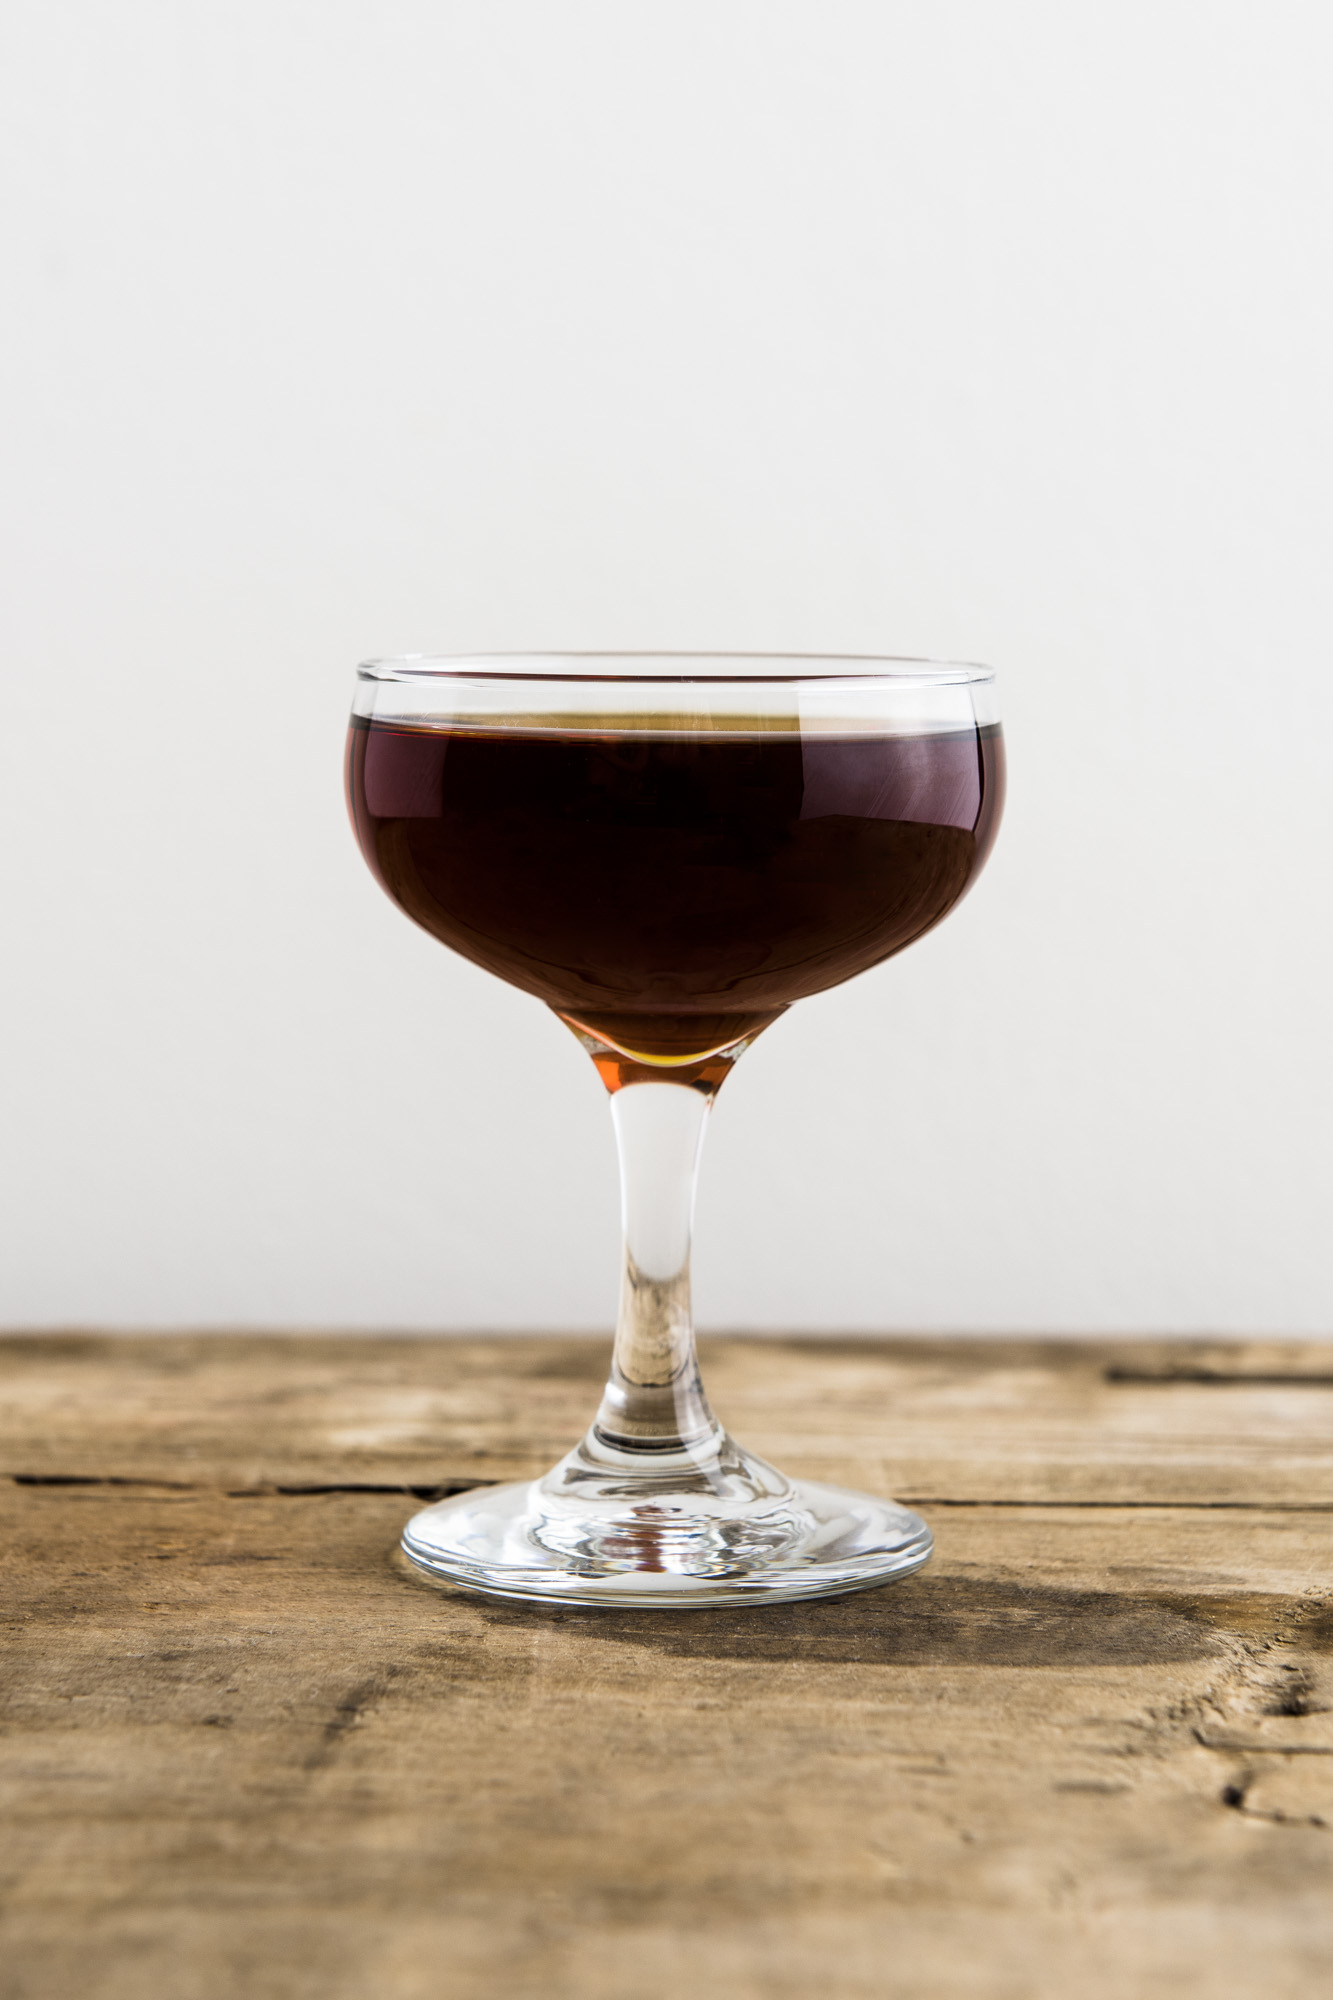 AMERICAN RAVEN   1 oz Cognac or American Brandy  1 oz Chareau  1 oz Fernet Branca  Stir all ingredients over ice. Strain into coupe.